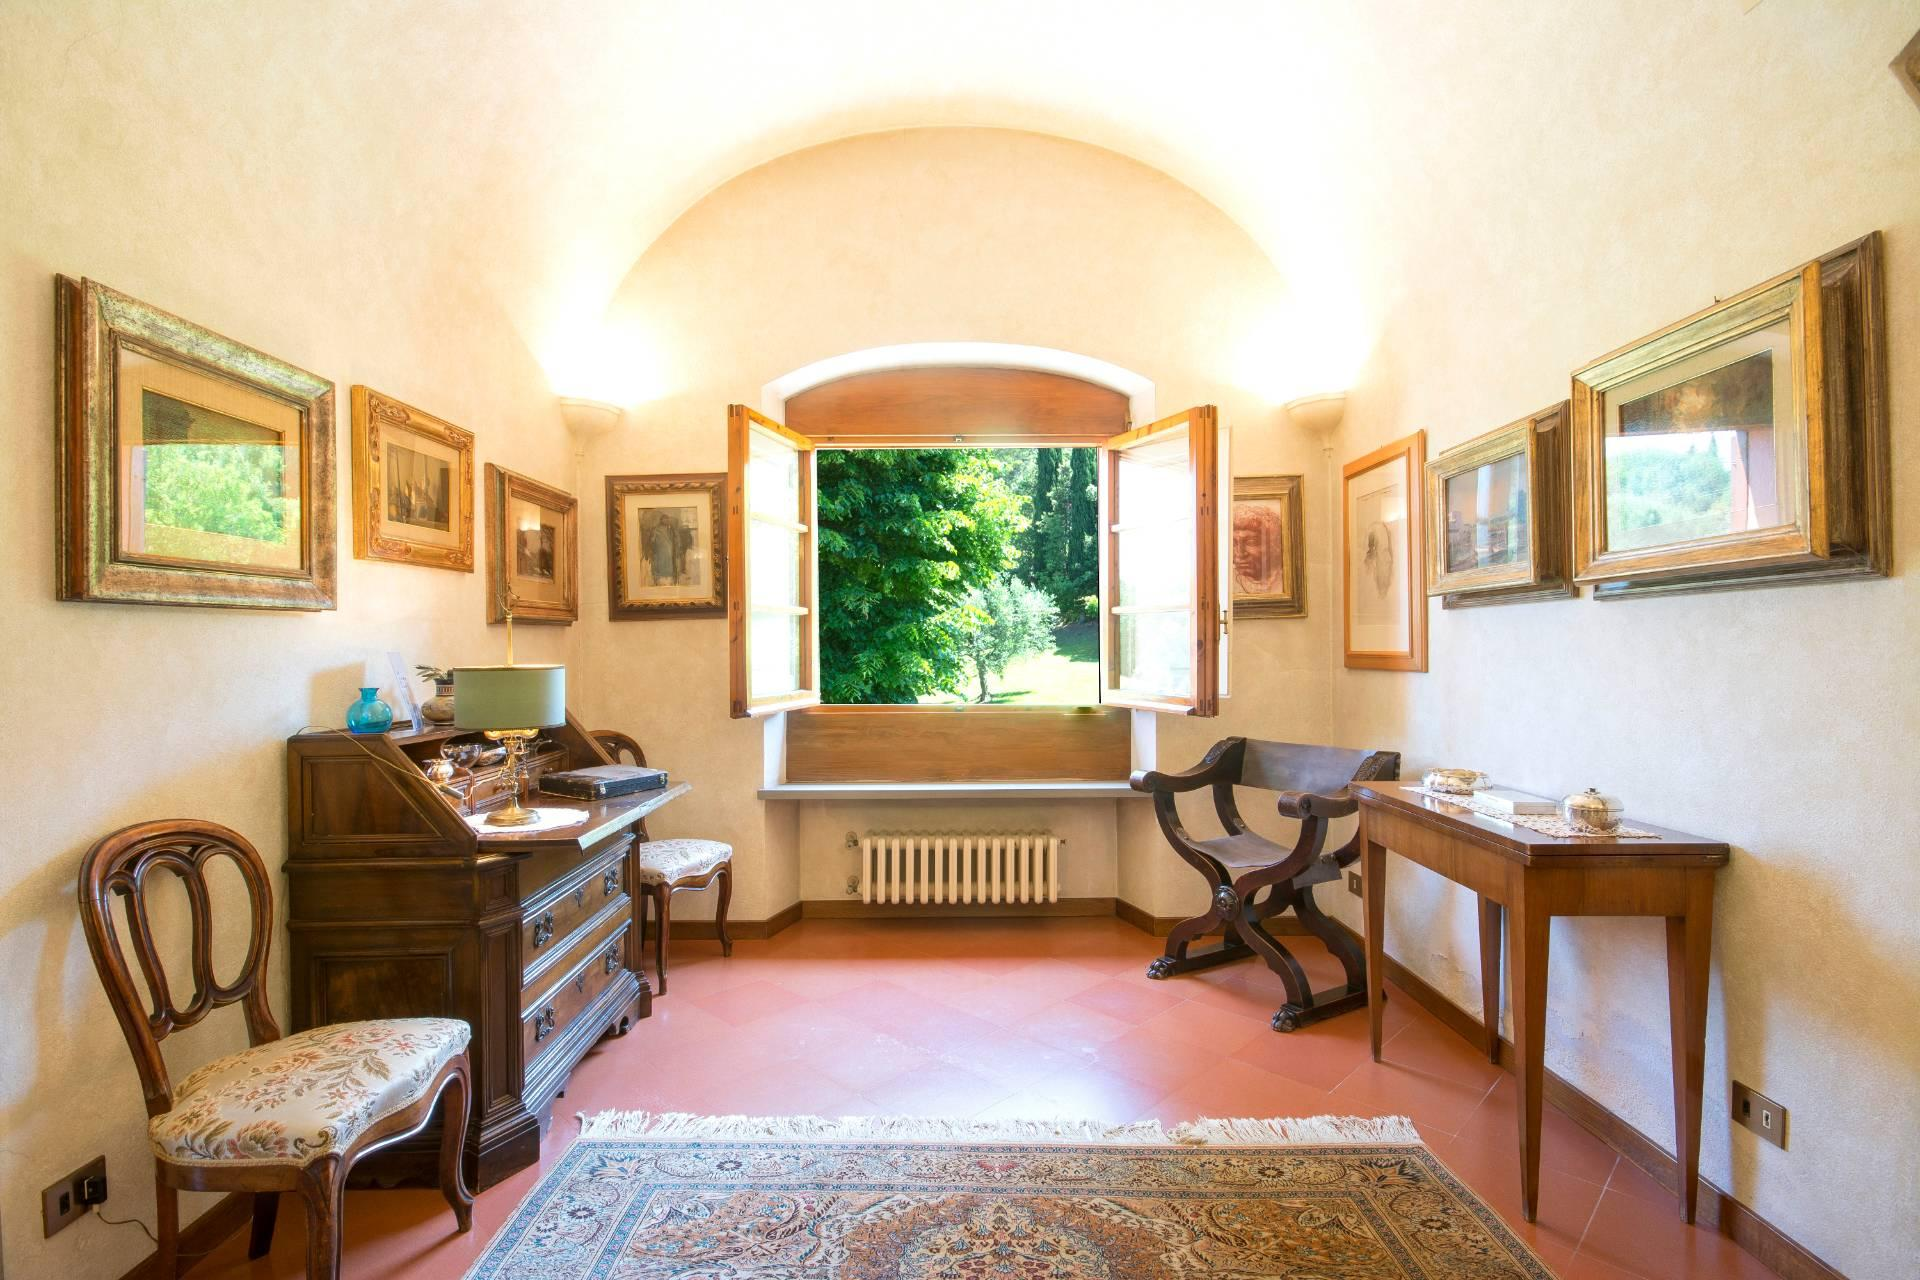 Charming Tuscan villa with views over Florence - 10